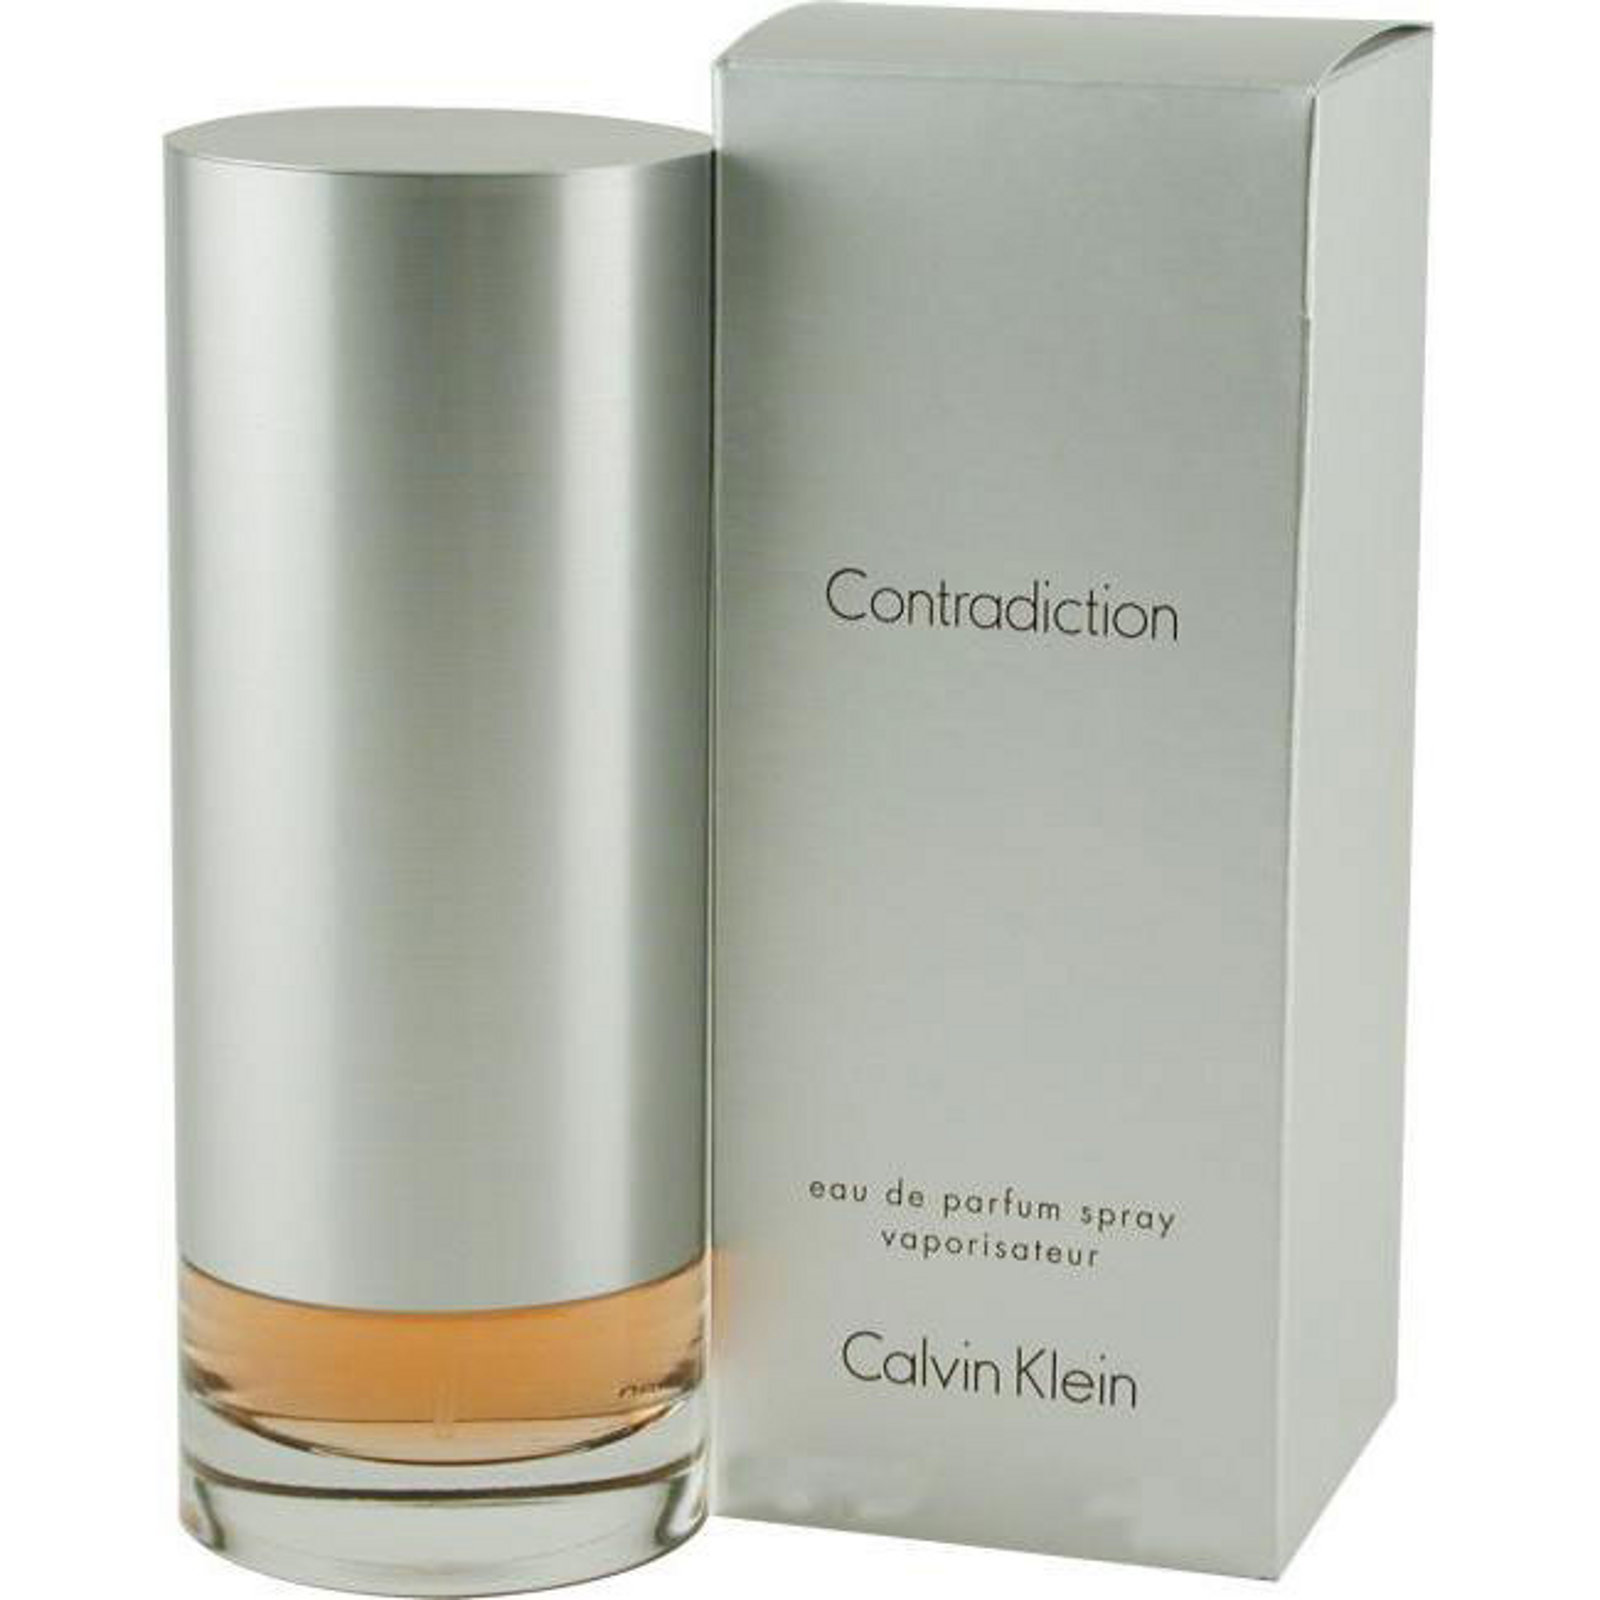 contradiction_calvin_klein_perfume